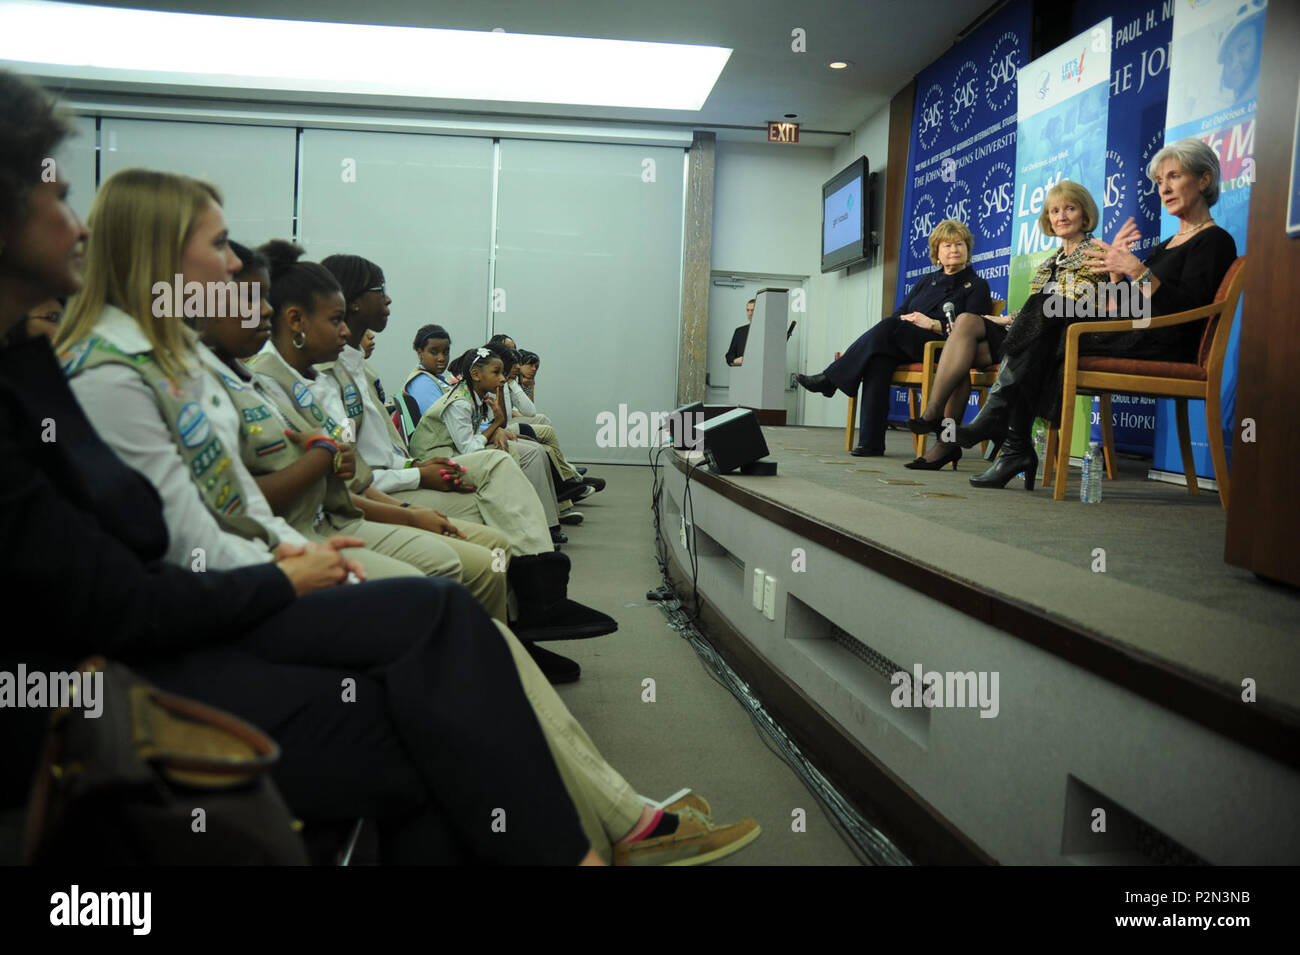 (On Stage From Left) Kathy Cloninger of Girl Scouts USA, Rhonda Jordan of Kraft Foods and HHH Secretary Sebelius talk to Girl Scouts about the Let's Move Iniative a day after its 1st annivesary. - Stock Image